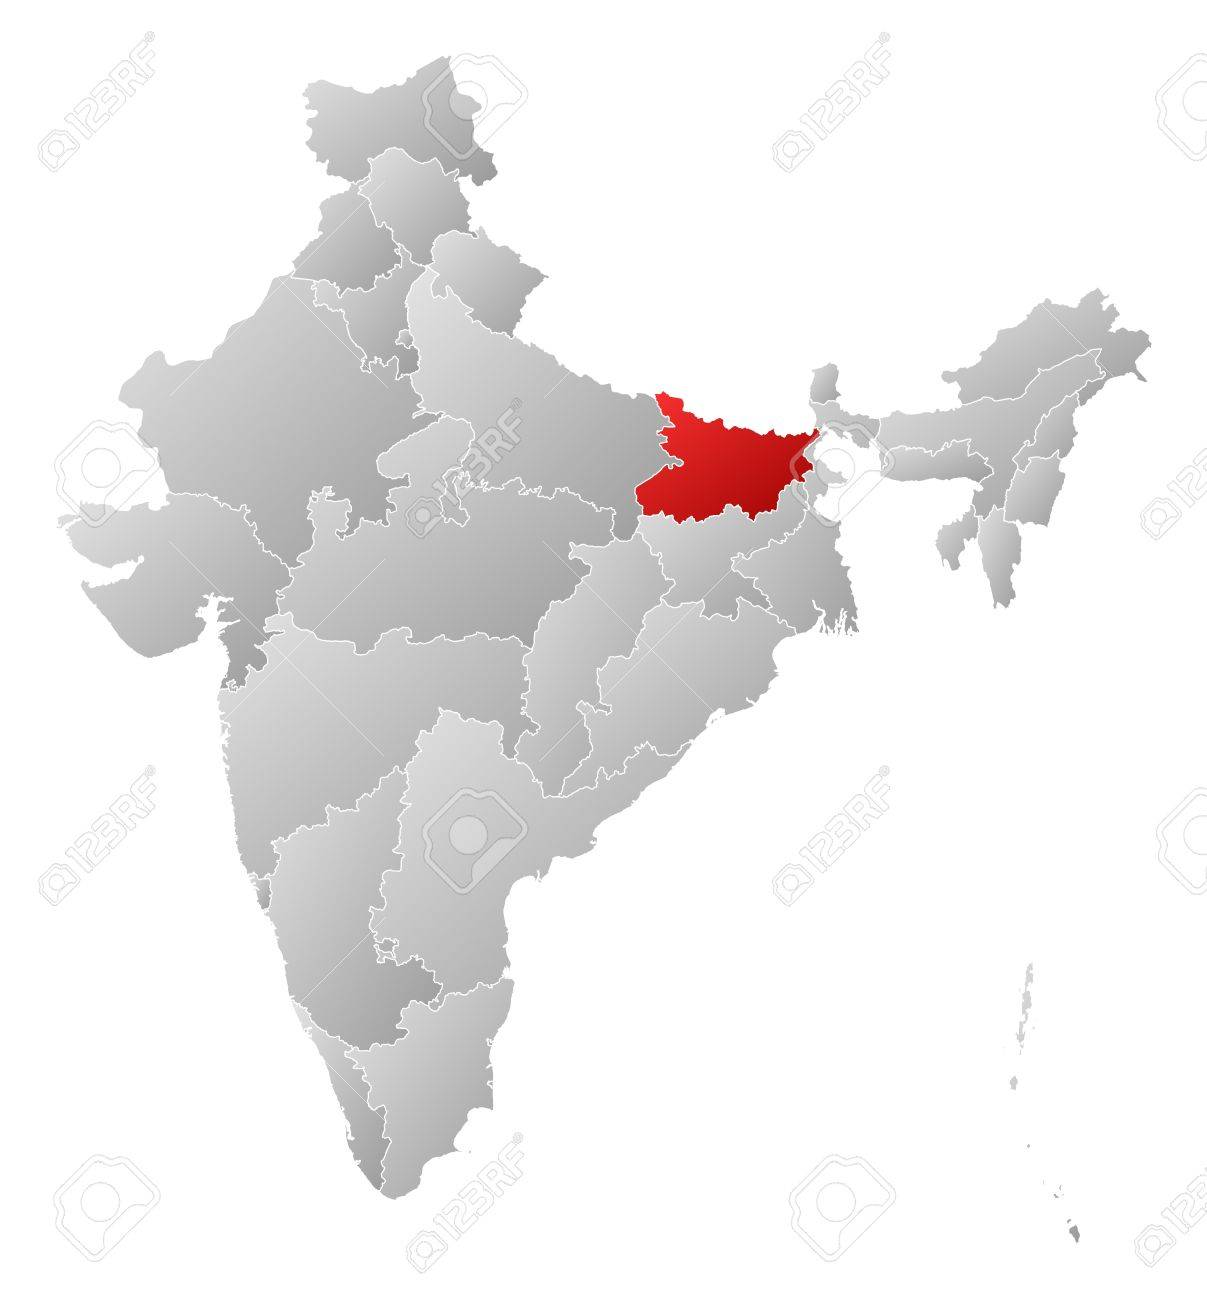 Political map of India with the several states where Bihar is.. on united states map no states, india and bangladesh, india map with city, white us map with states, map showing all states, india map with himalayan mountains, germany map german states, india provinces states, india big cities and states, telangana india map with states, india bangalore palace, 2014 right to work states, india map with just states, india map with state boundaries, india map with word, us map with capitals 50 states, map of india with states, red vs. blue states map states, punjab map with states, india and its states,